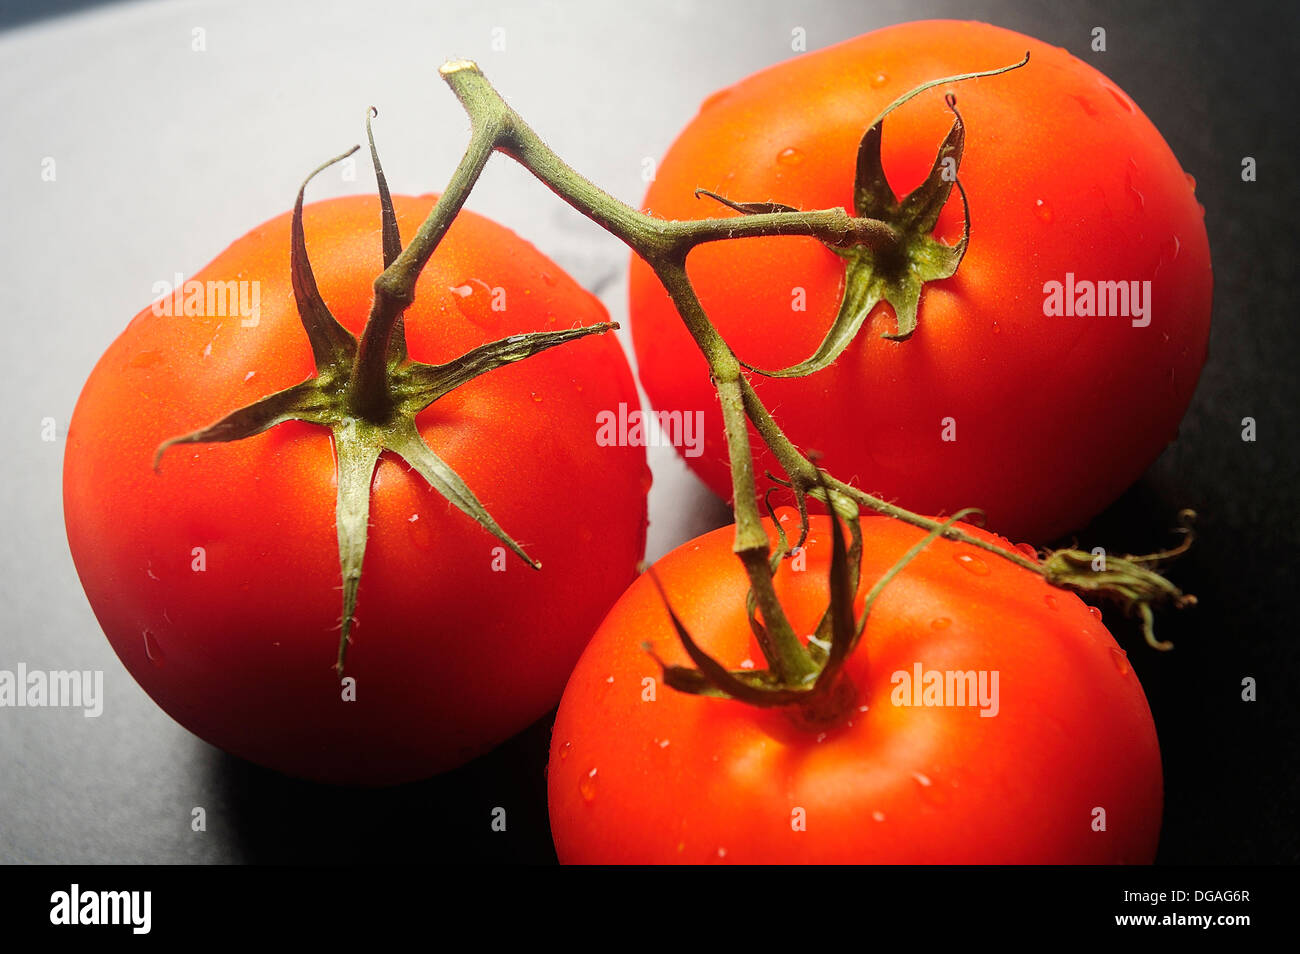 Photographed backlit red tomatoes - Stock Image